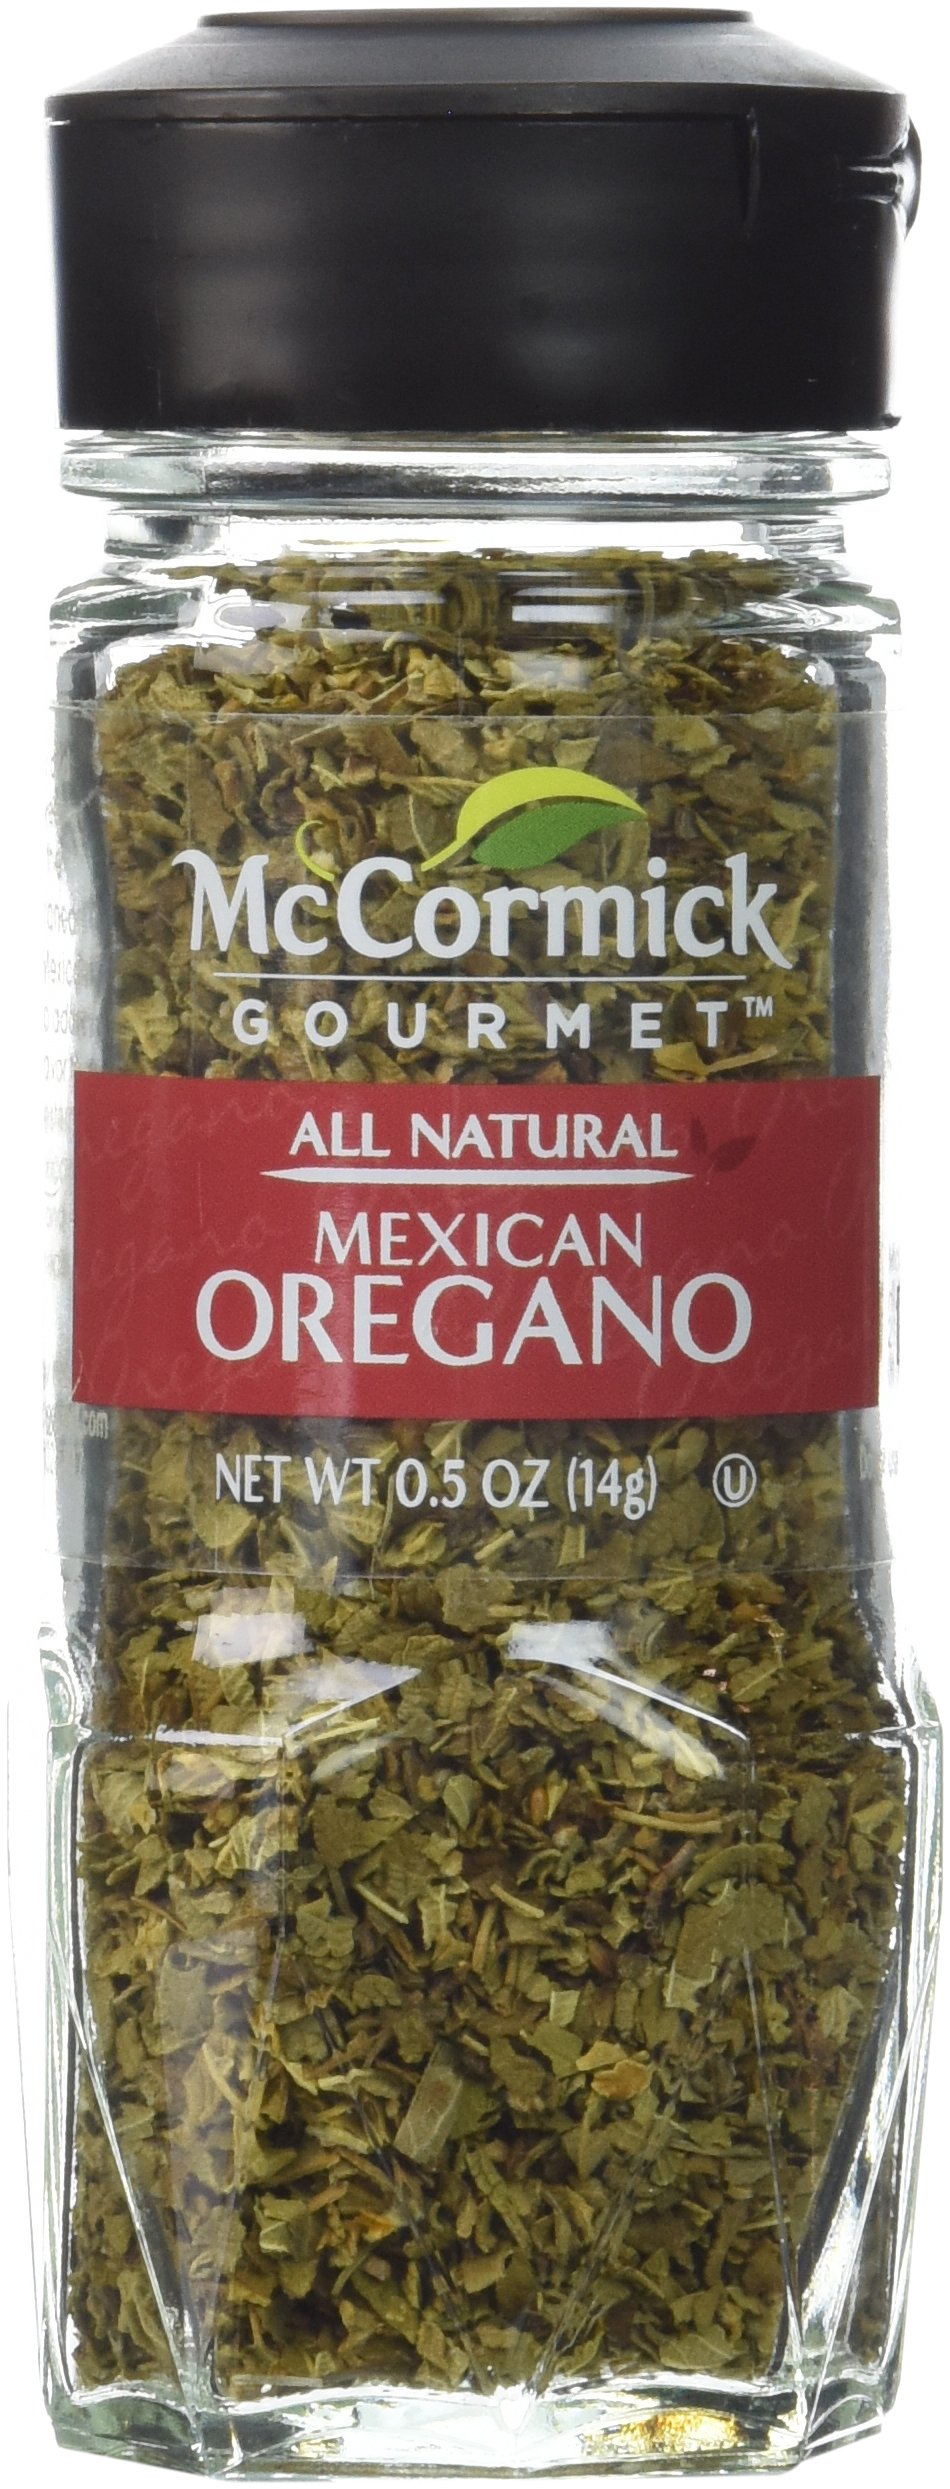 McCormick Gourmet Collection MEXICAN OREGANO LEAVES .5oz (Single)